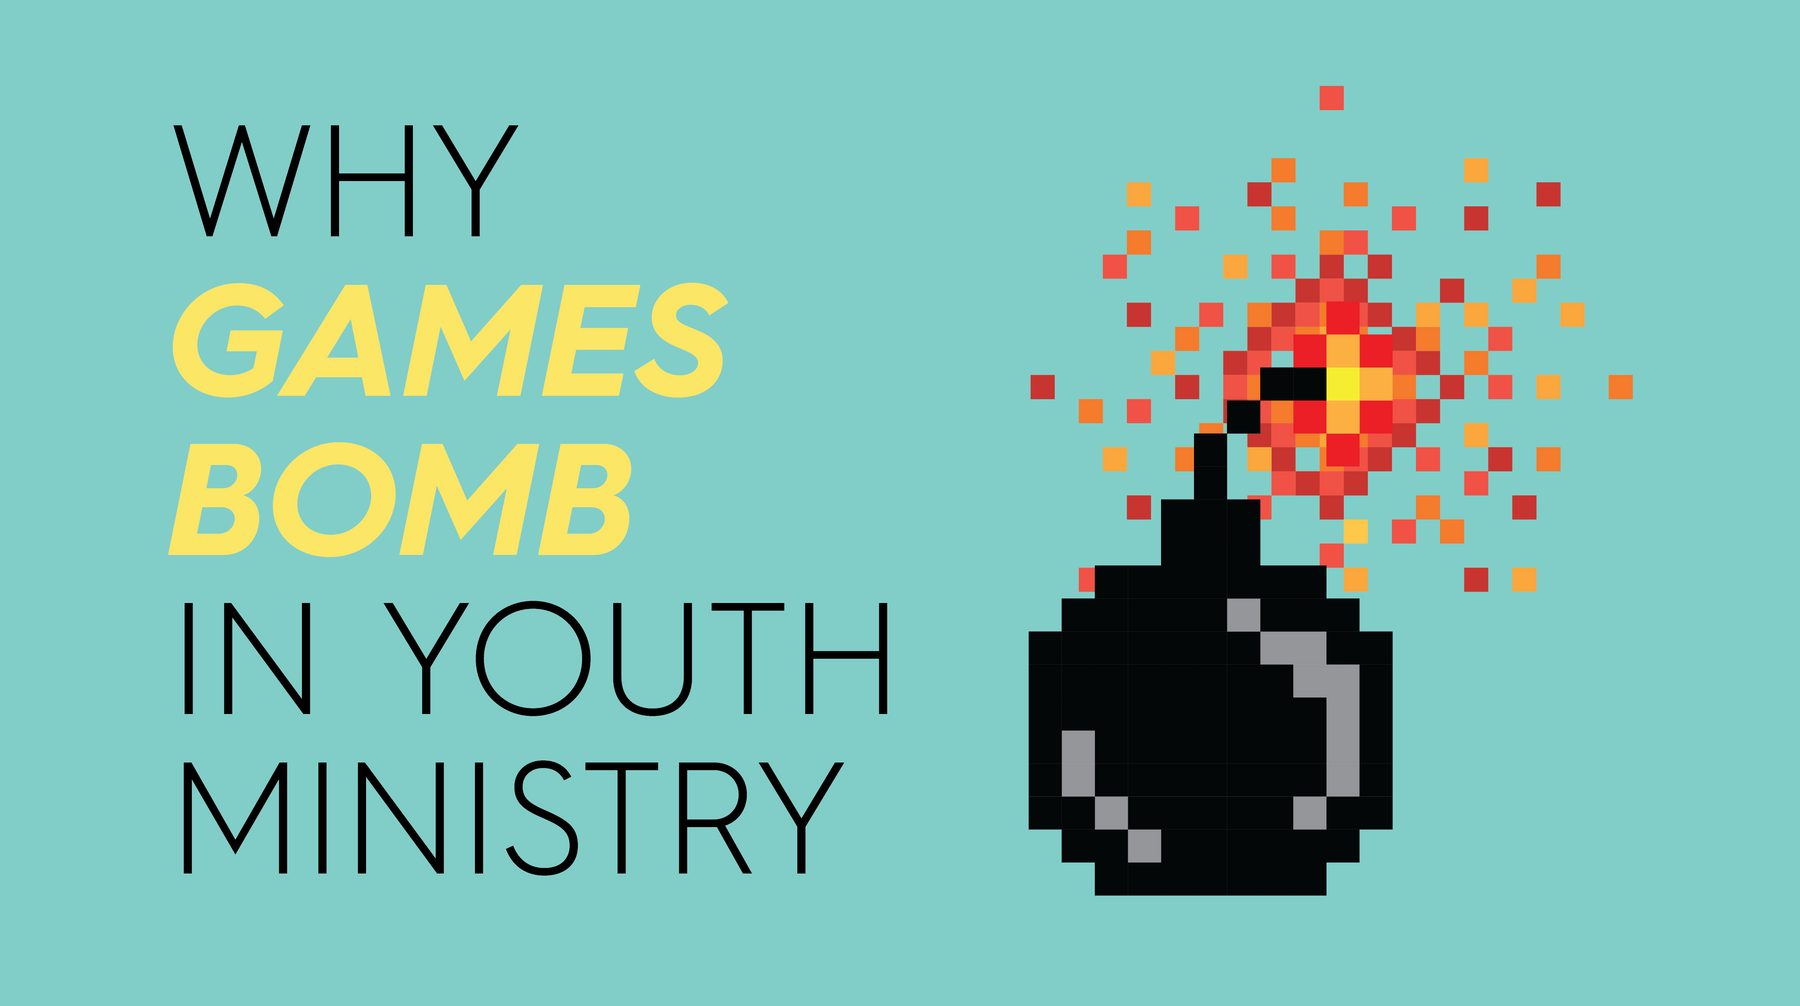 Why Games Bomb in Youth Ministry